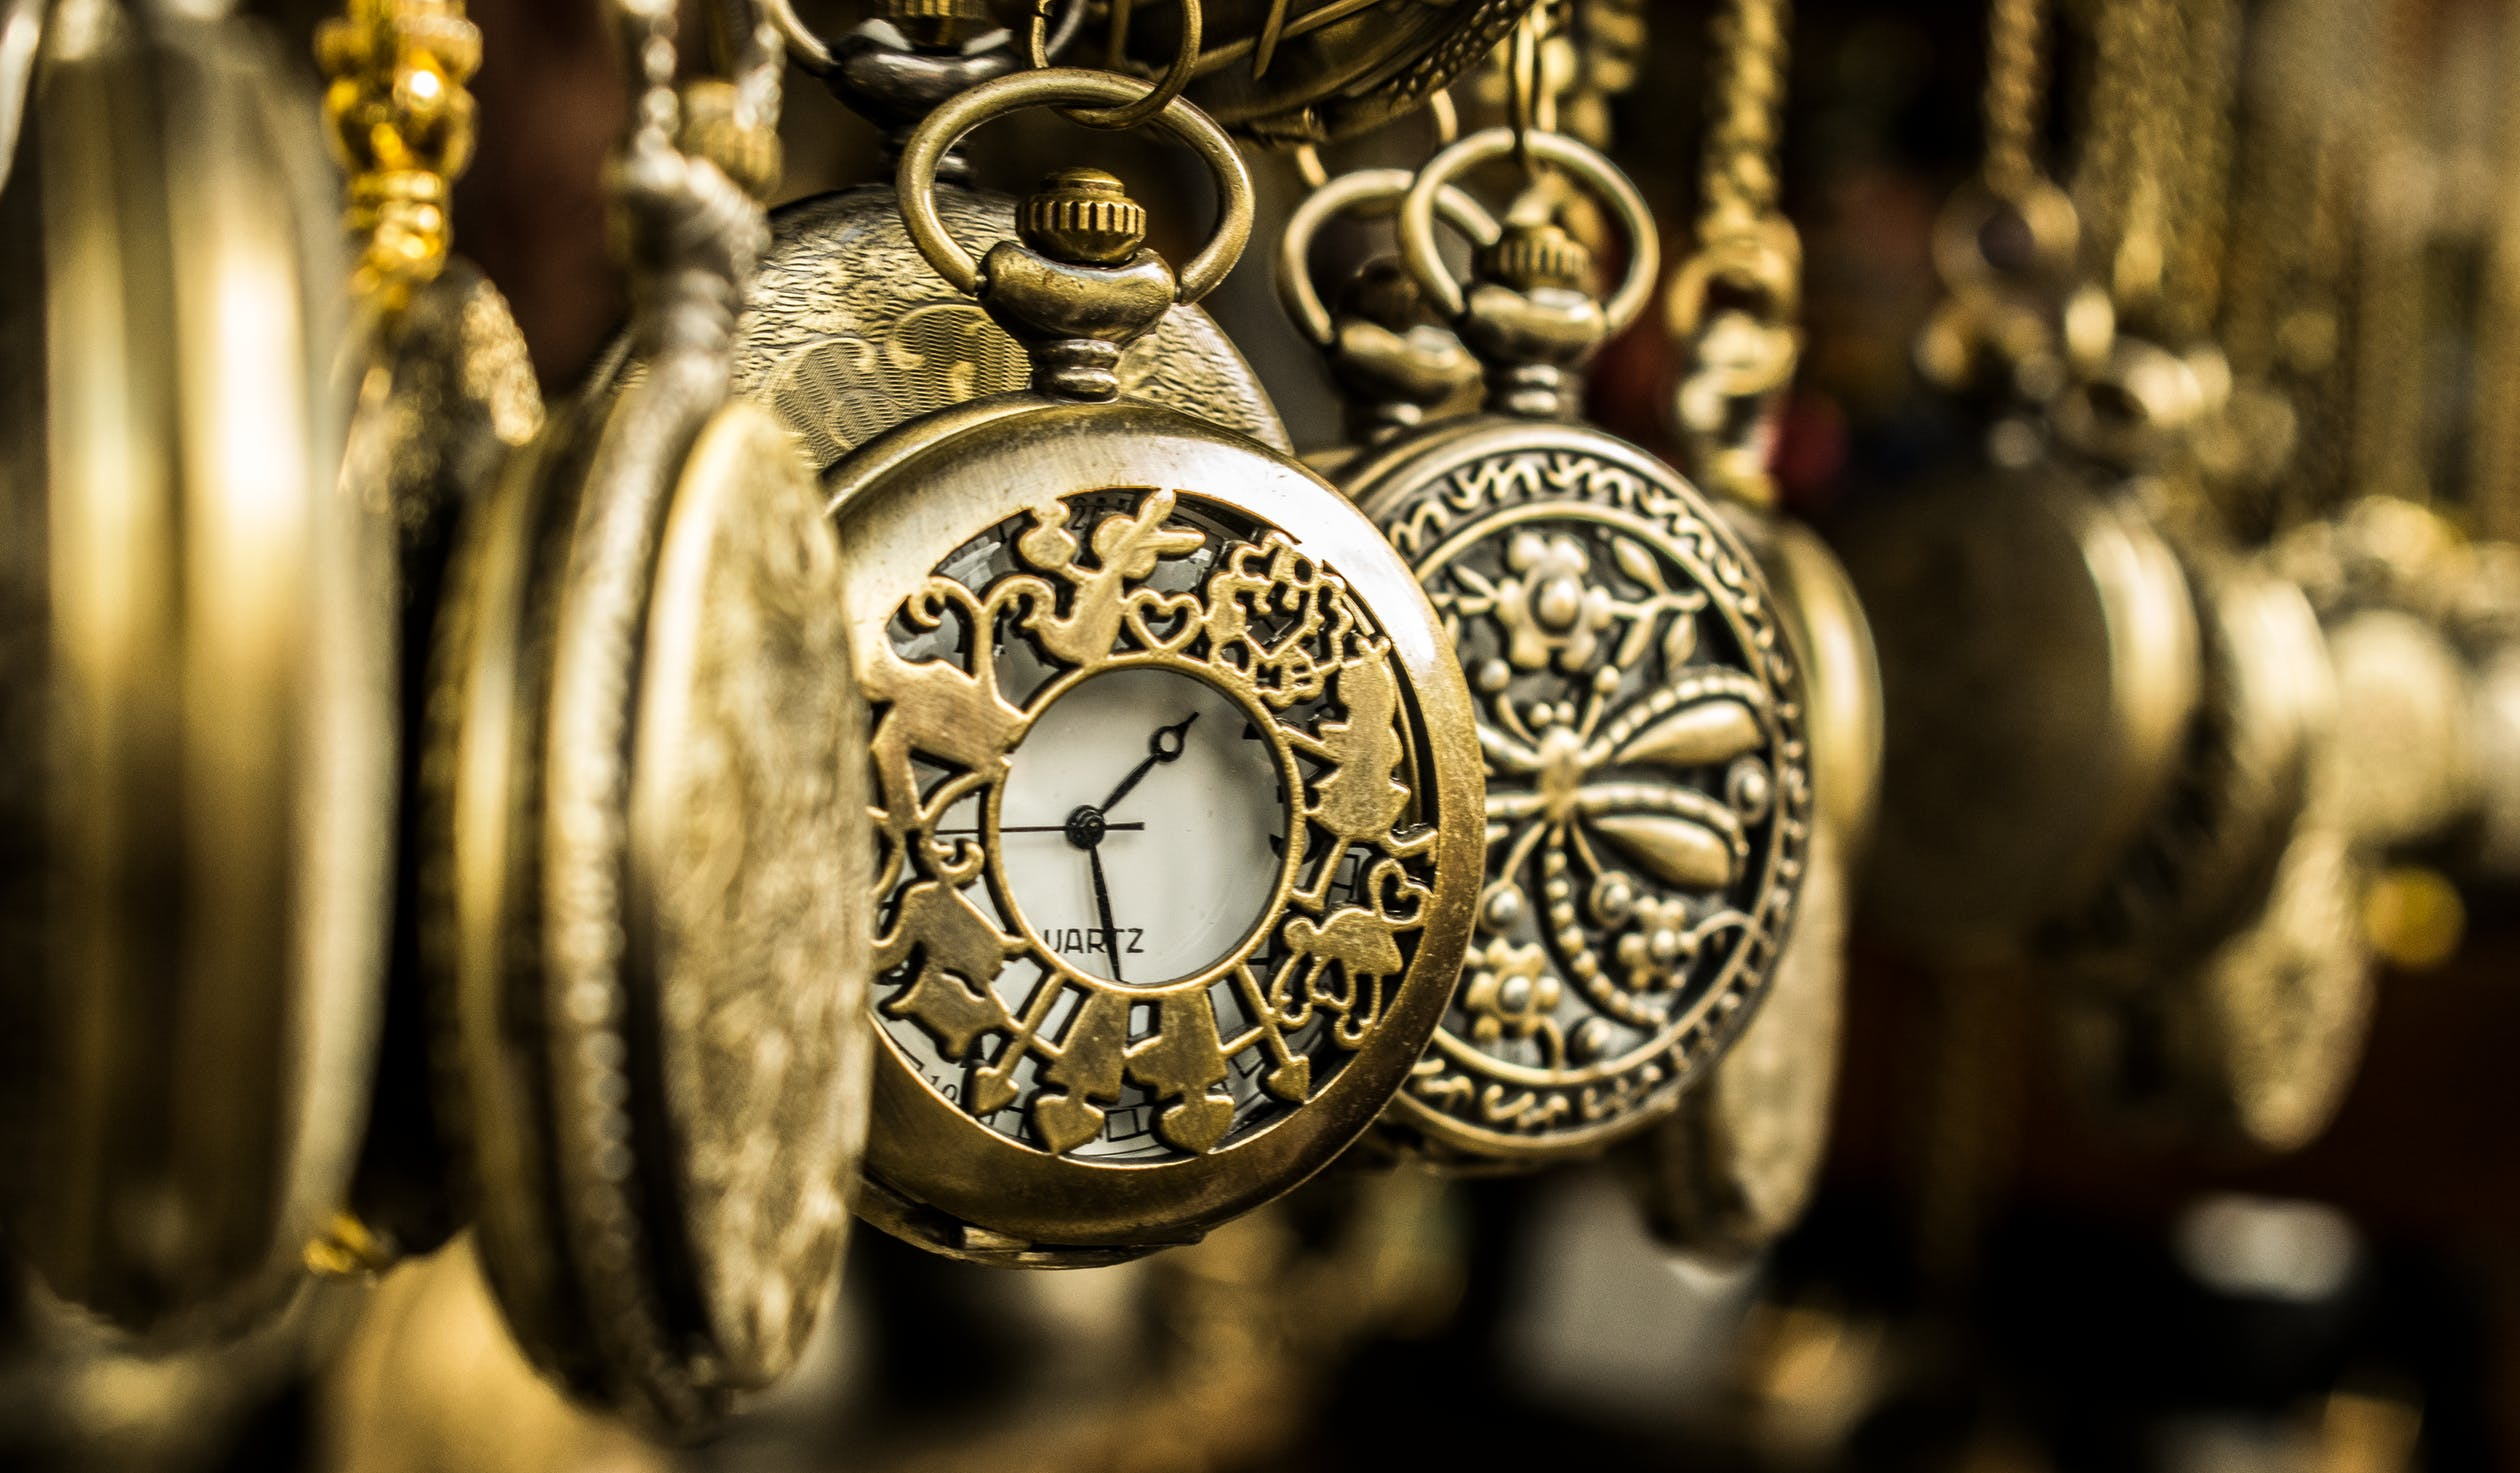 Vintage Pocket Watches, Watch Buying Guide, Vintage Watches, Classic Watches, Quartz Watches